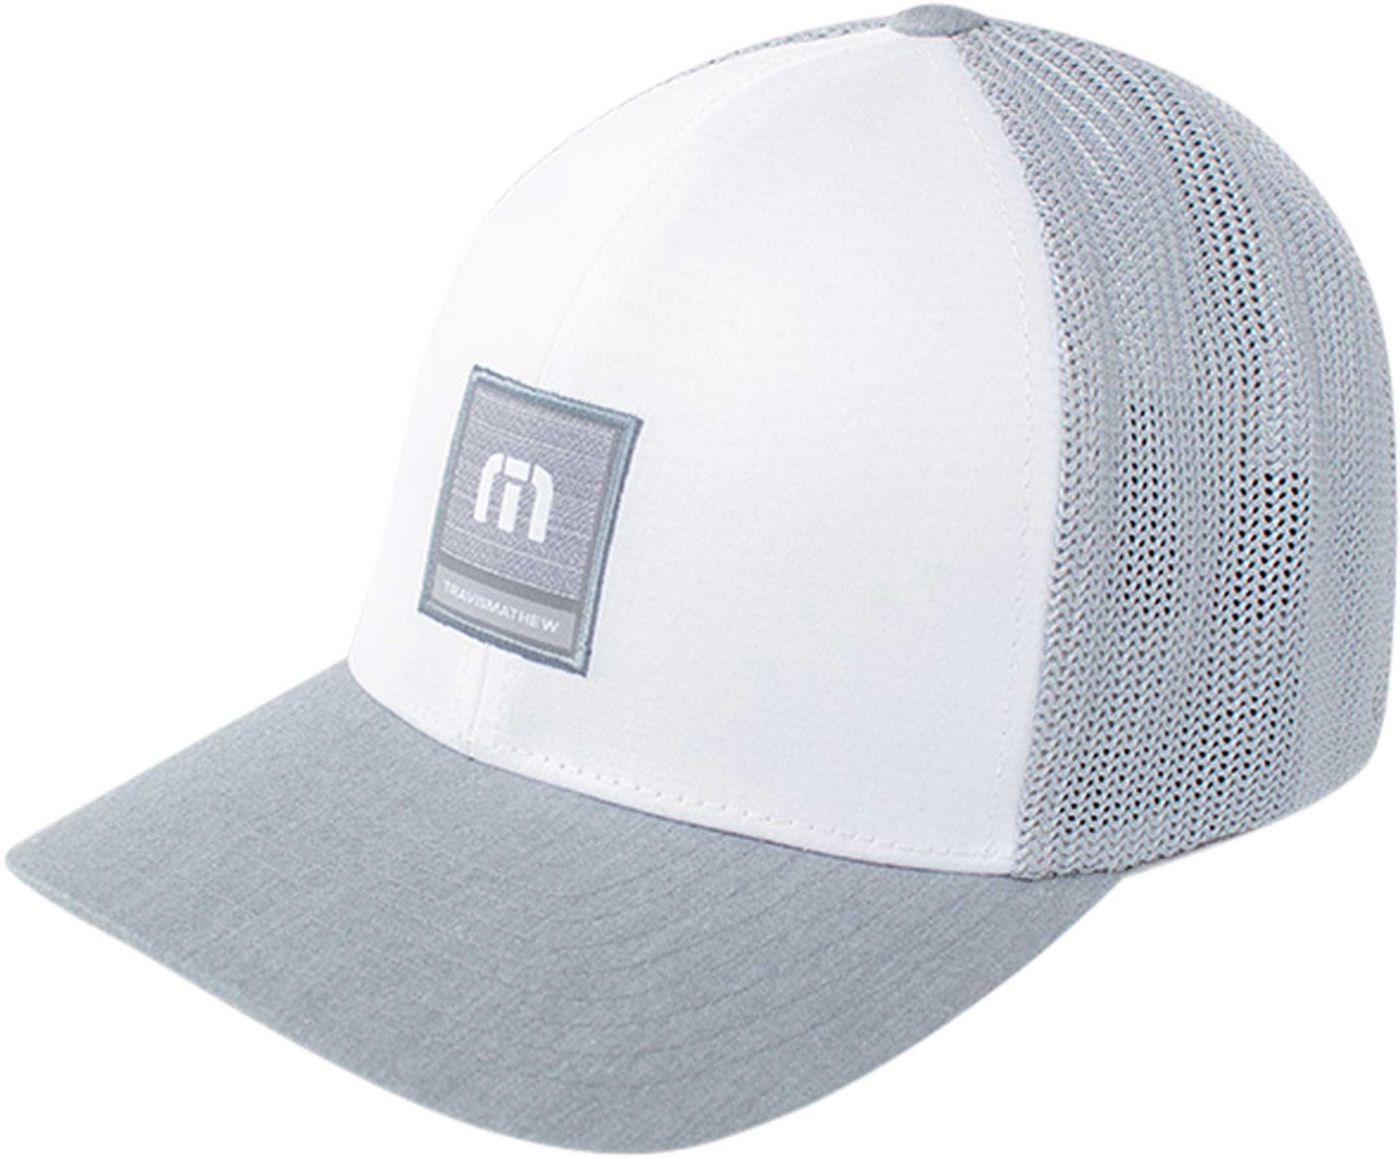 TravisMathew Men's Francis Golf Hat